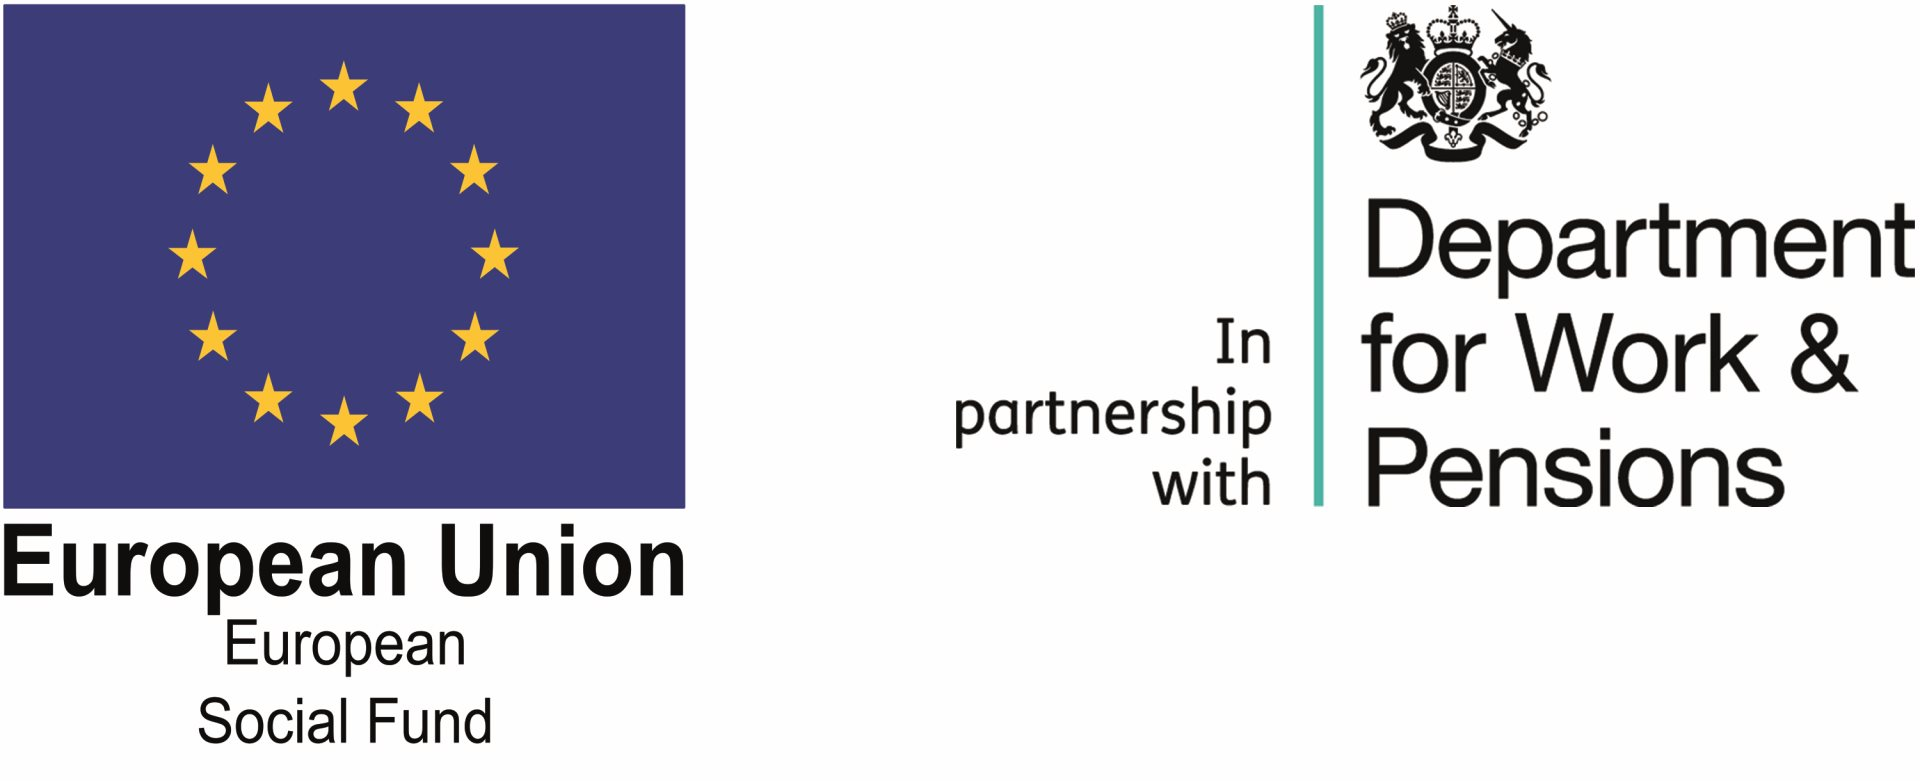 Logos of Department for Work and Pensions, European Social Fund and Jobcentre Plus